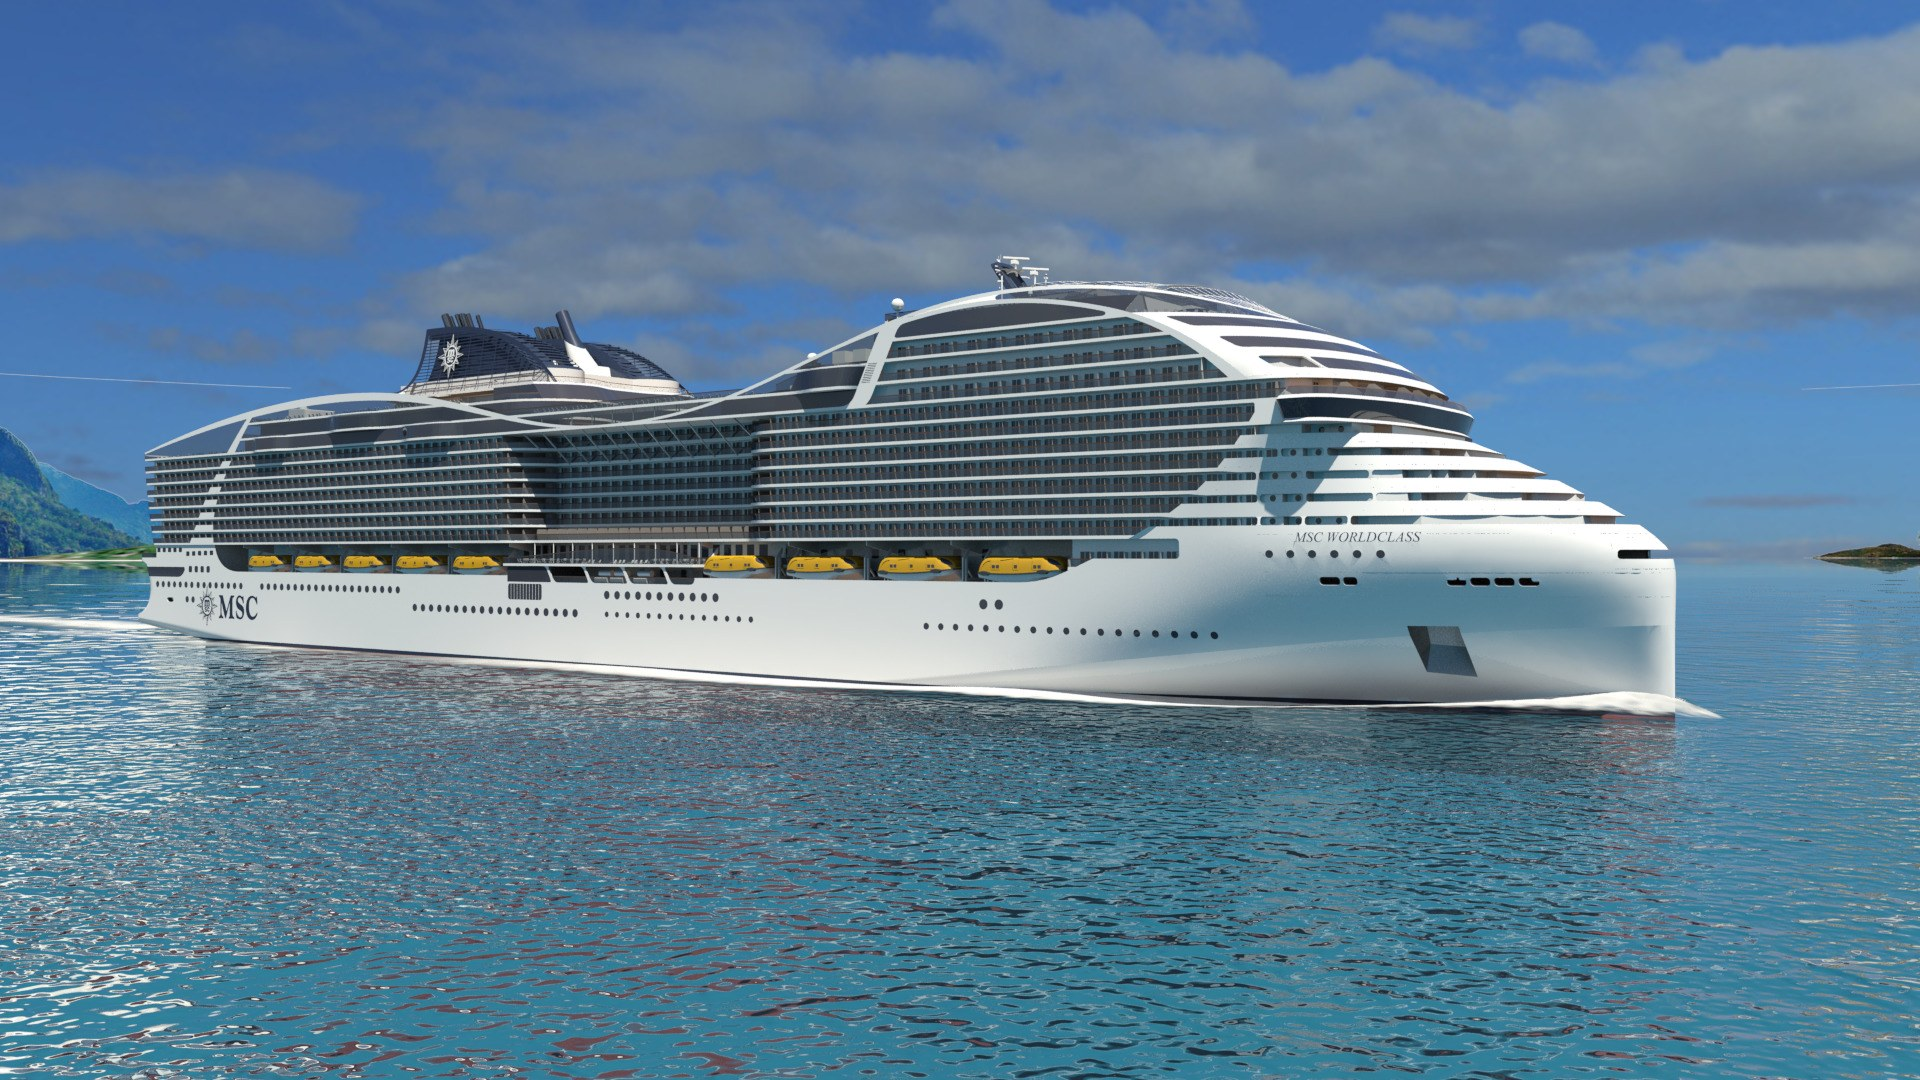 Biggest Cruise Ship in the World Announced by MSC Cruises - Condé ...